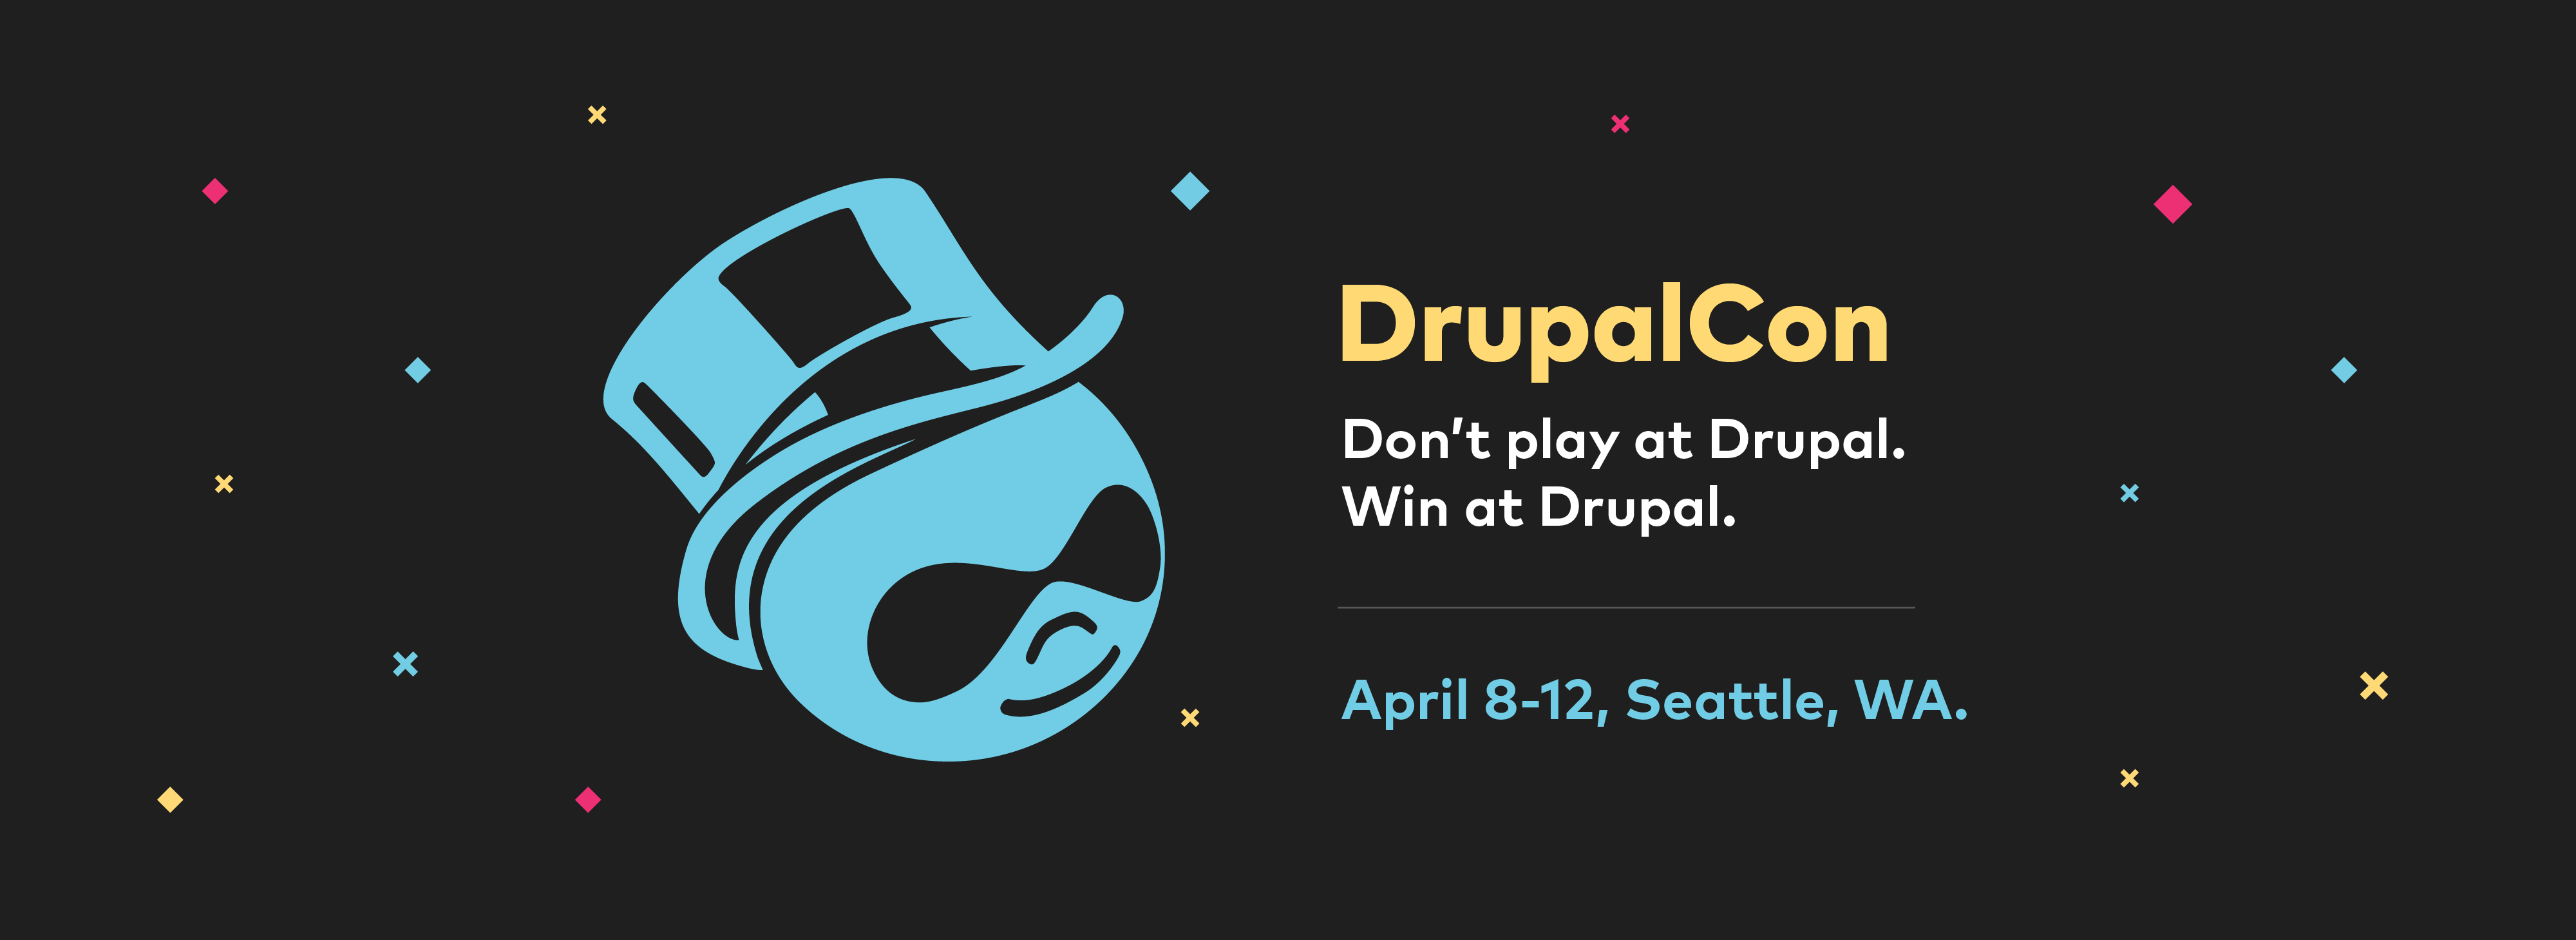 DrupalCon Seattle Blog